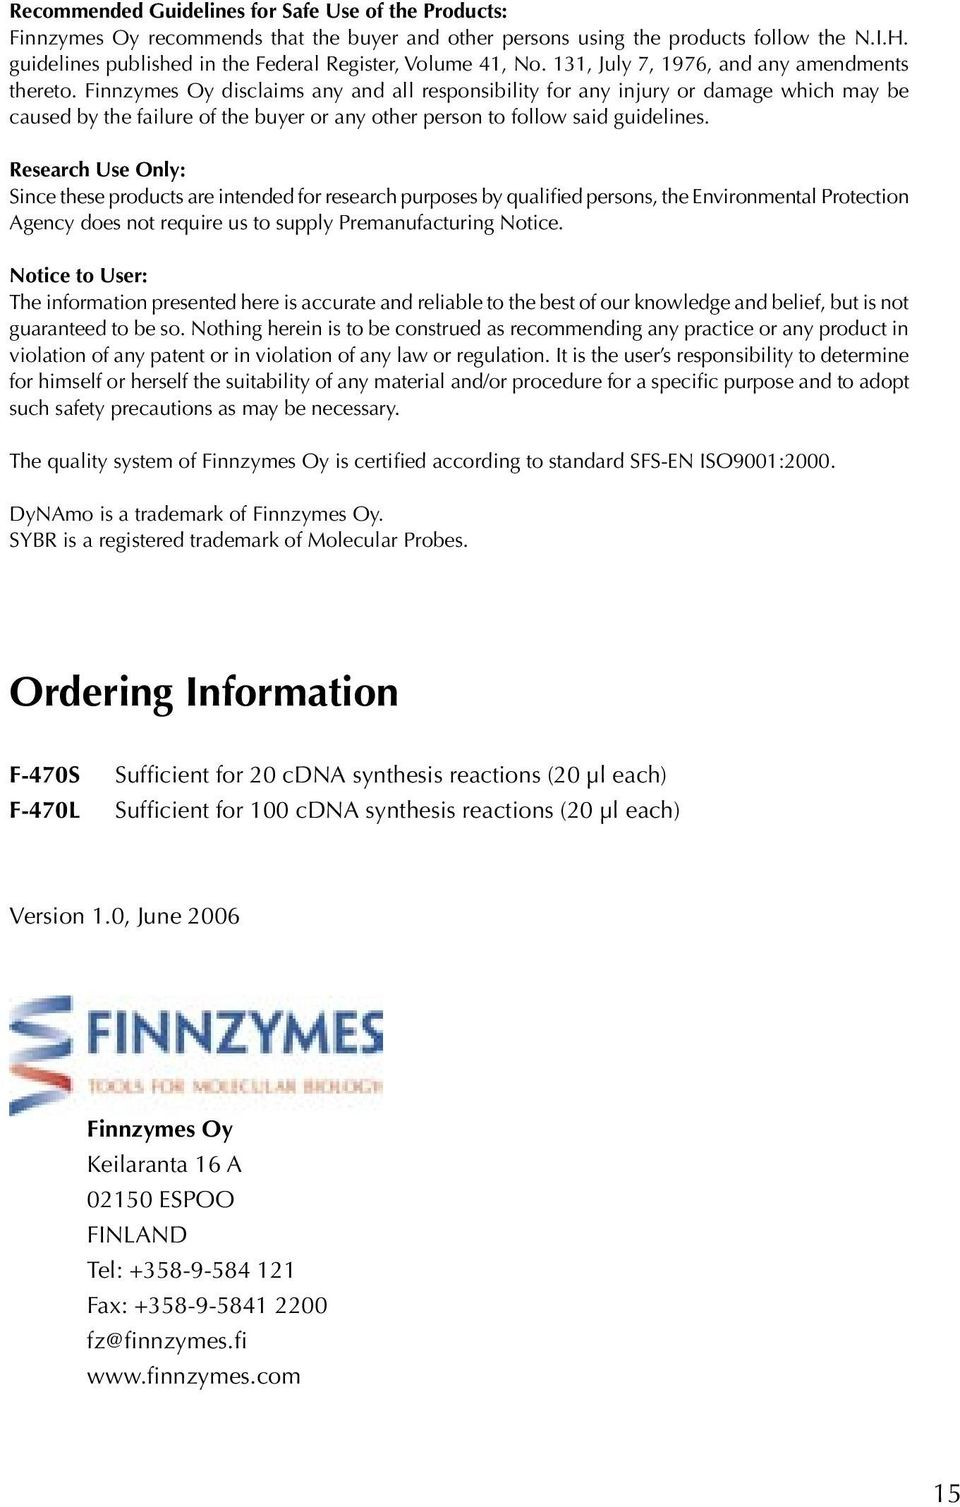 Finnzymes Oy disclaims any and all responsibility for any injury or damage which may be caused by the failure of the buyer or any other person to follow said guidelines.